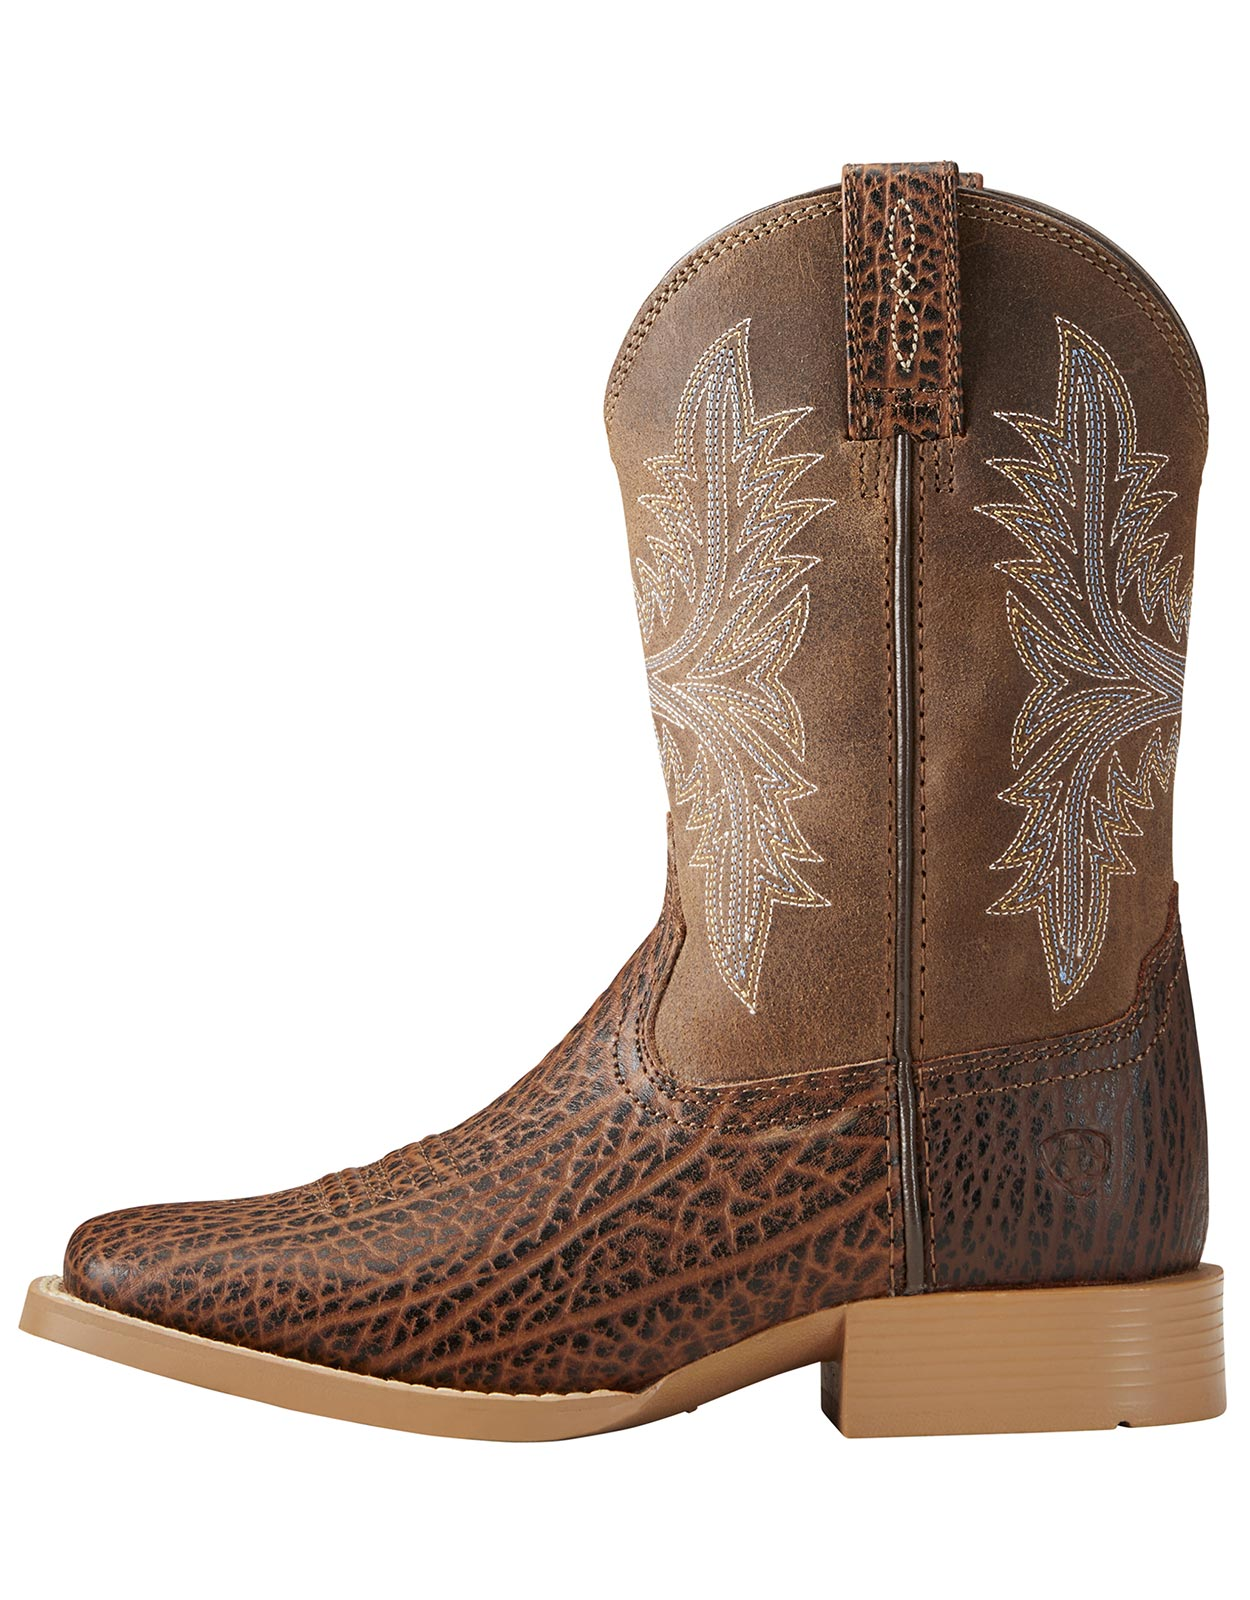 7a1e770580a68 ariat-children-s-cowhand-8-square-toe-cowboy-boots-adobe-tan-12.jpg